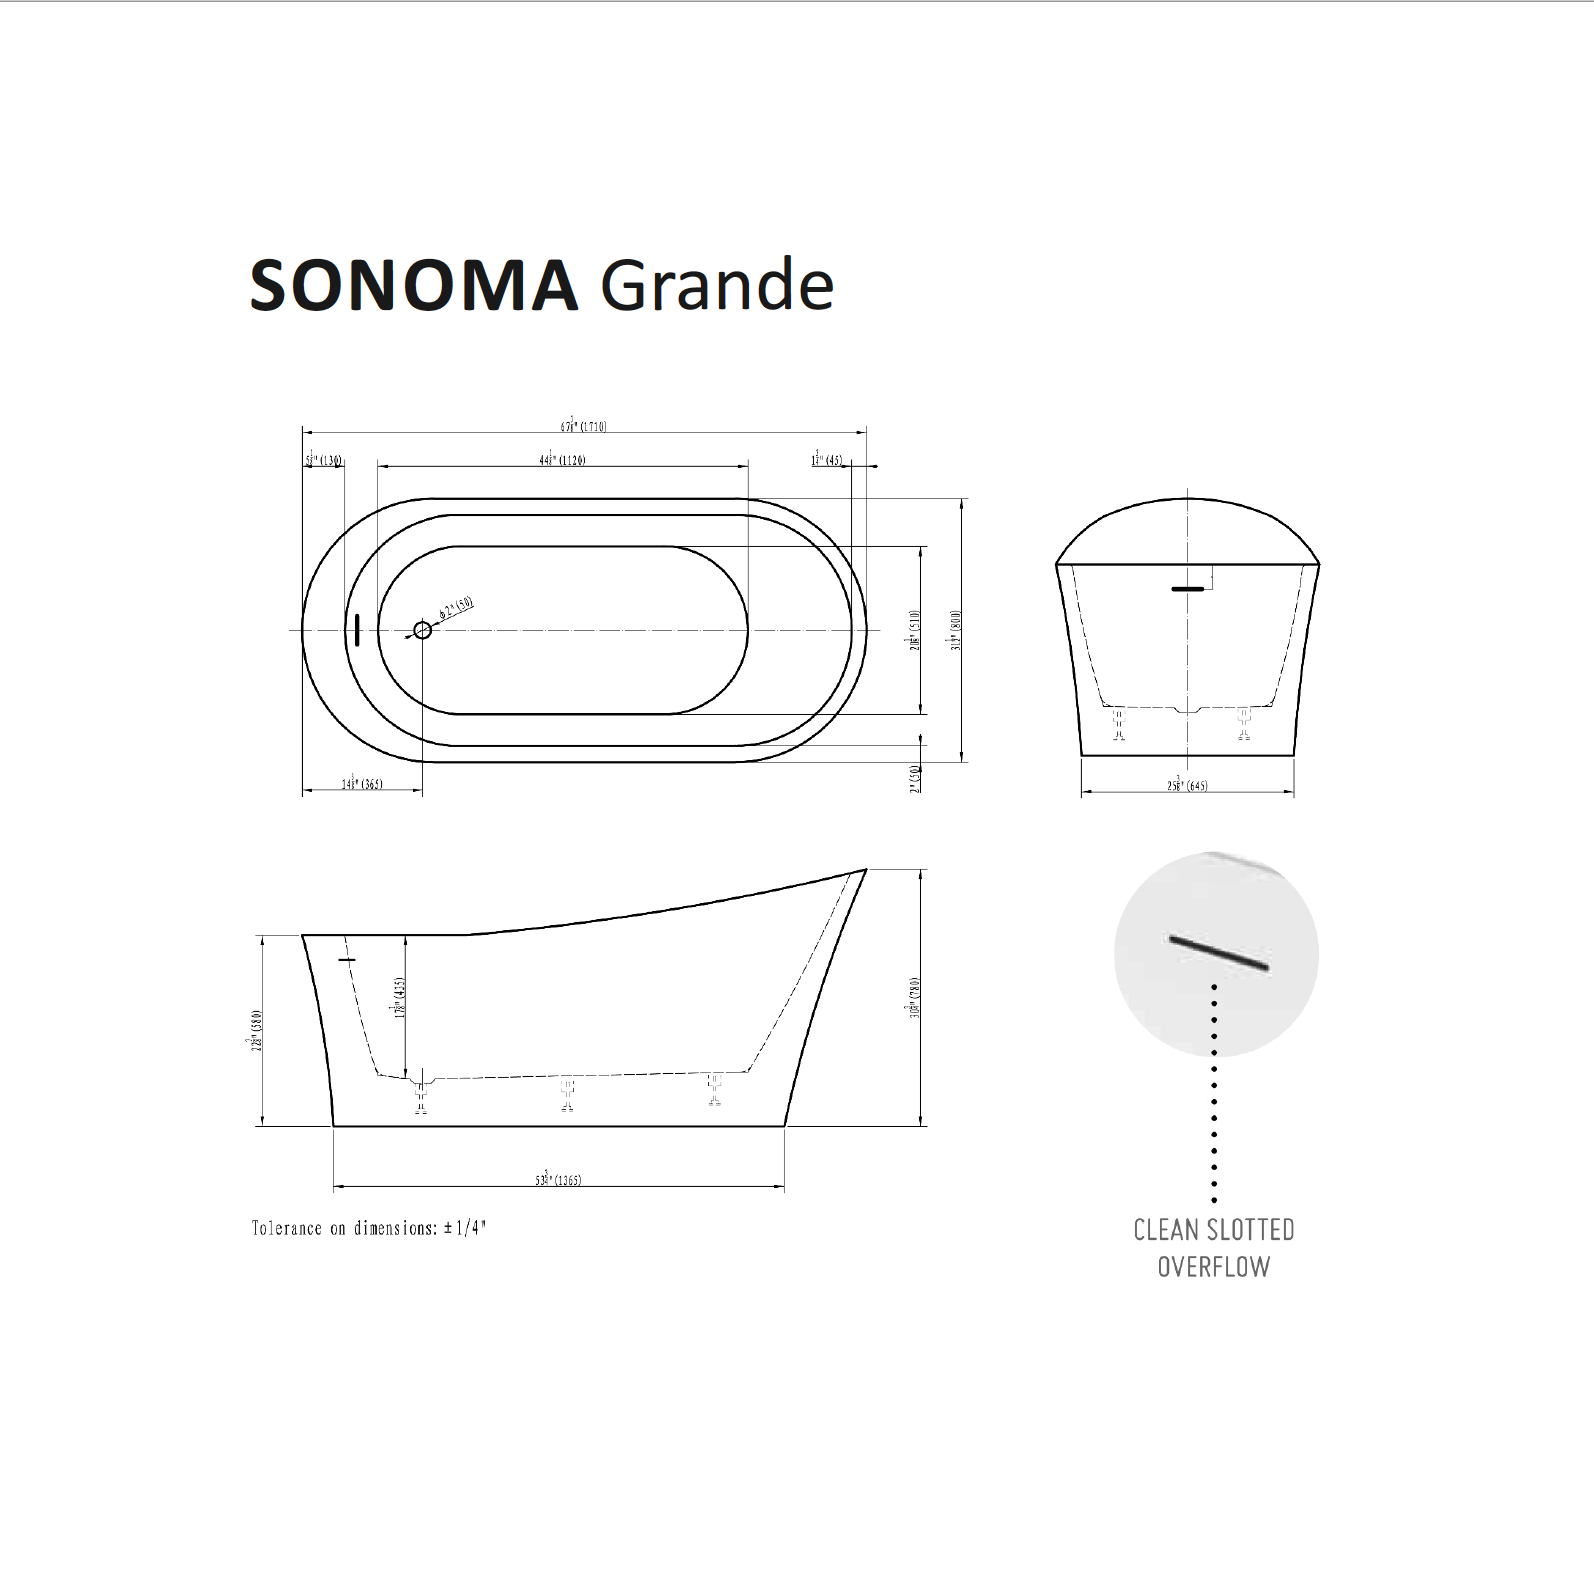 Sonoma Grande Tub Specifications